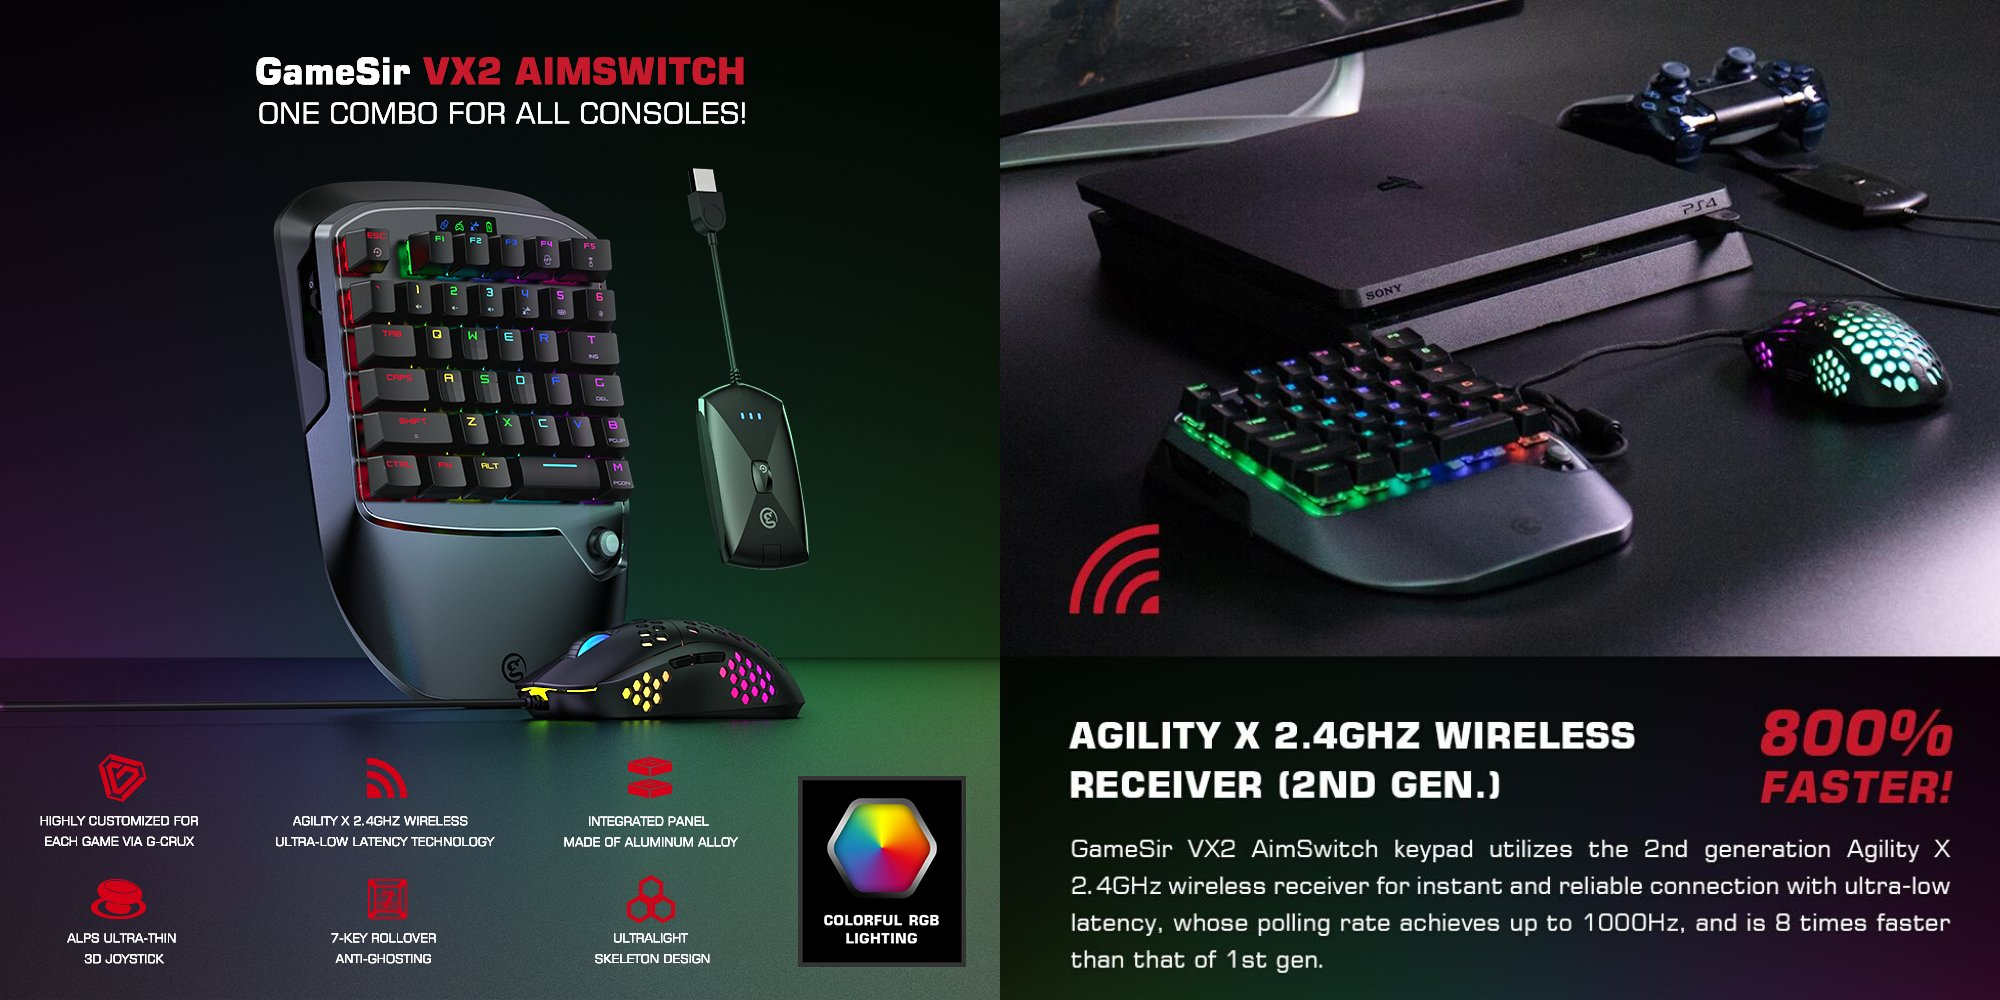 Gamesir Vx2 Aimswitch Review Mechanical Gaming Keyboard Mouse For Your Ps4 Nintendo Switch Xbox One Just Android